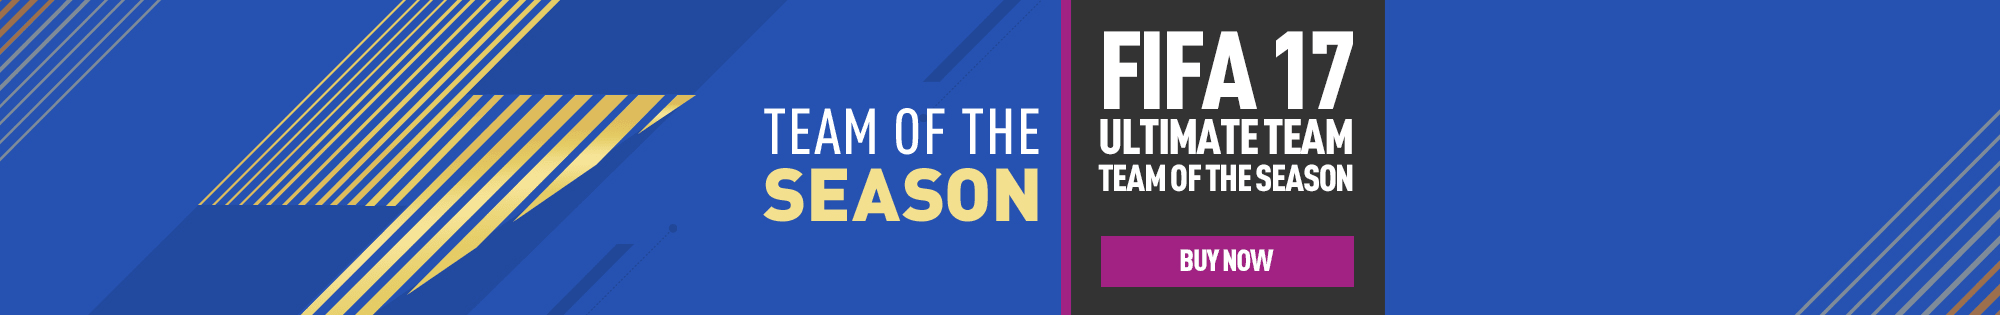 FIFA 17 Team of the Season for PlayStation 4 and Xbox One